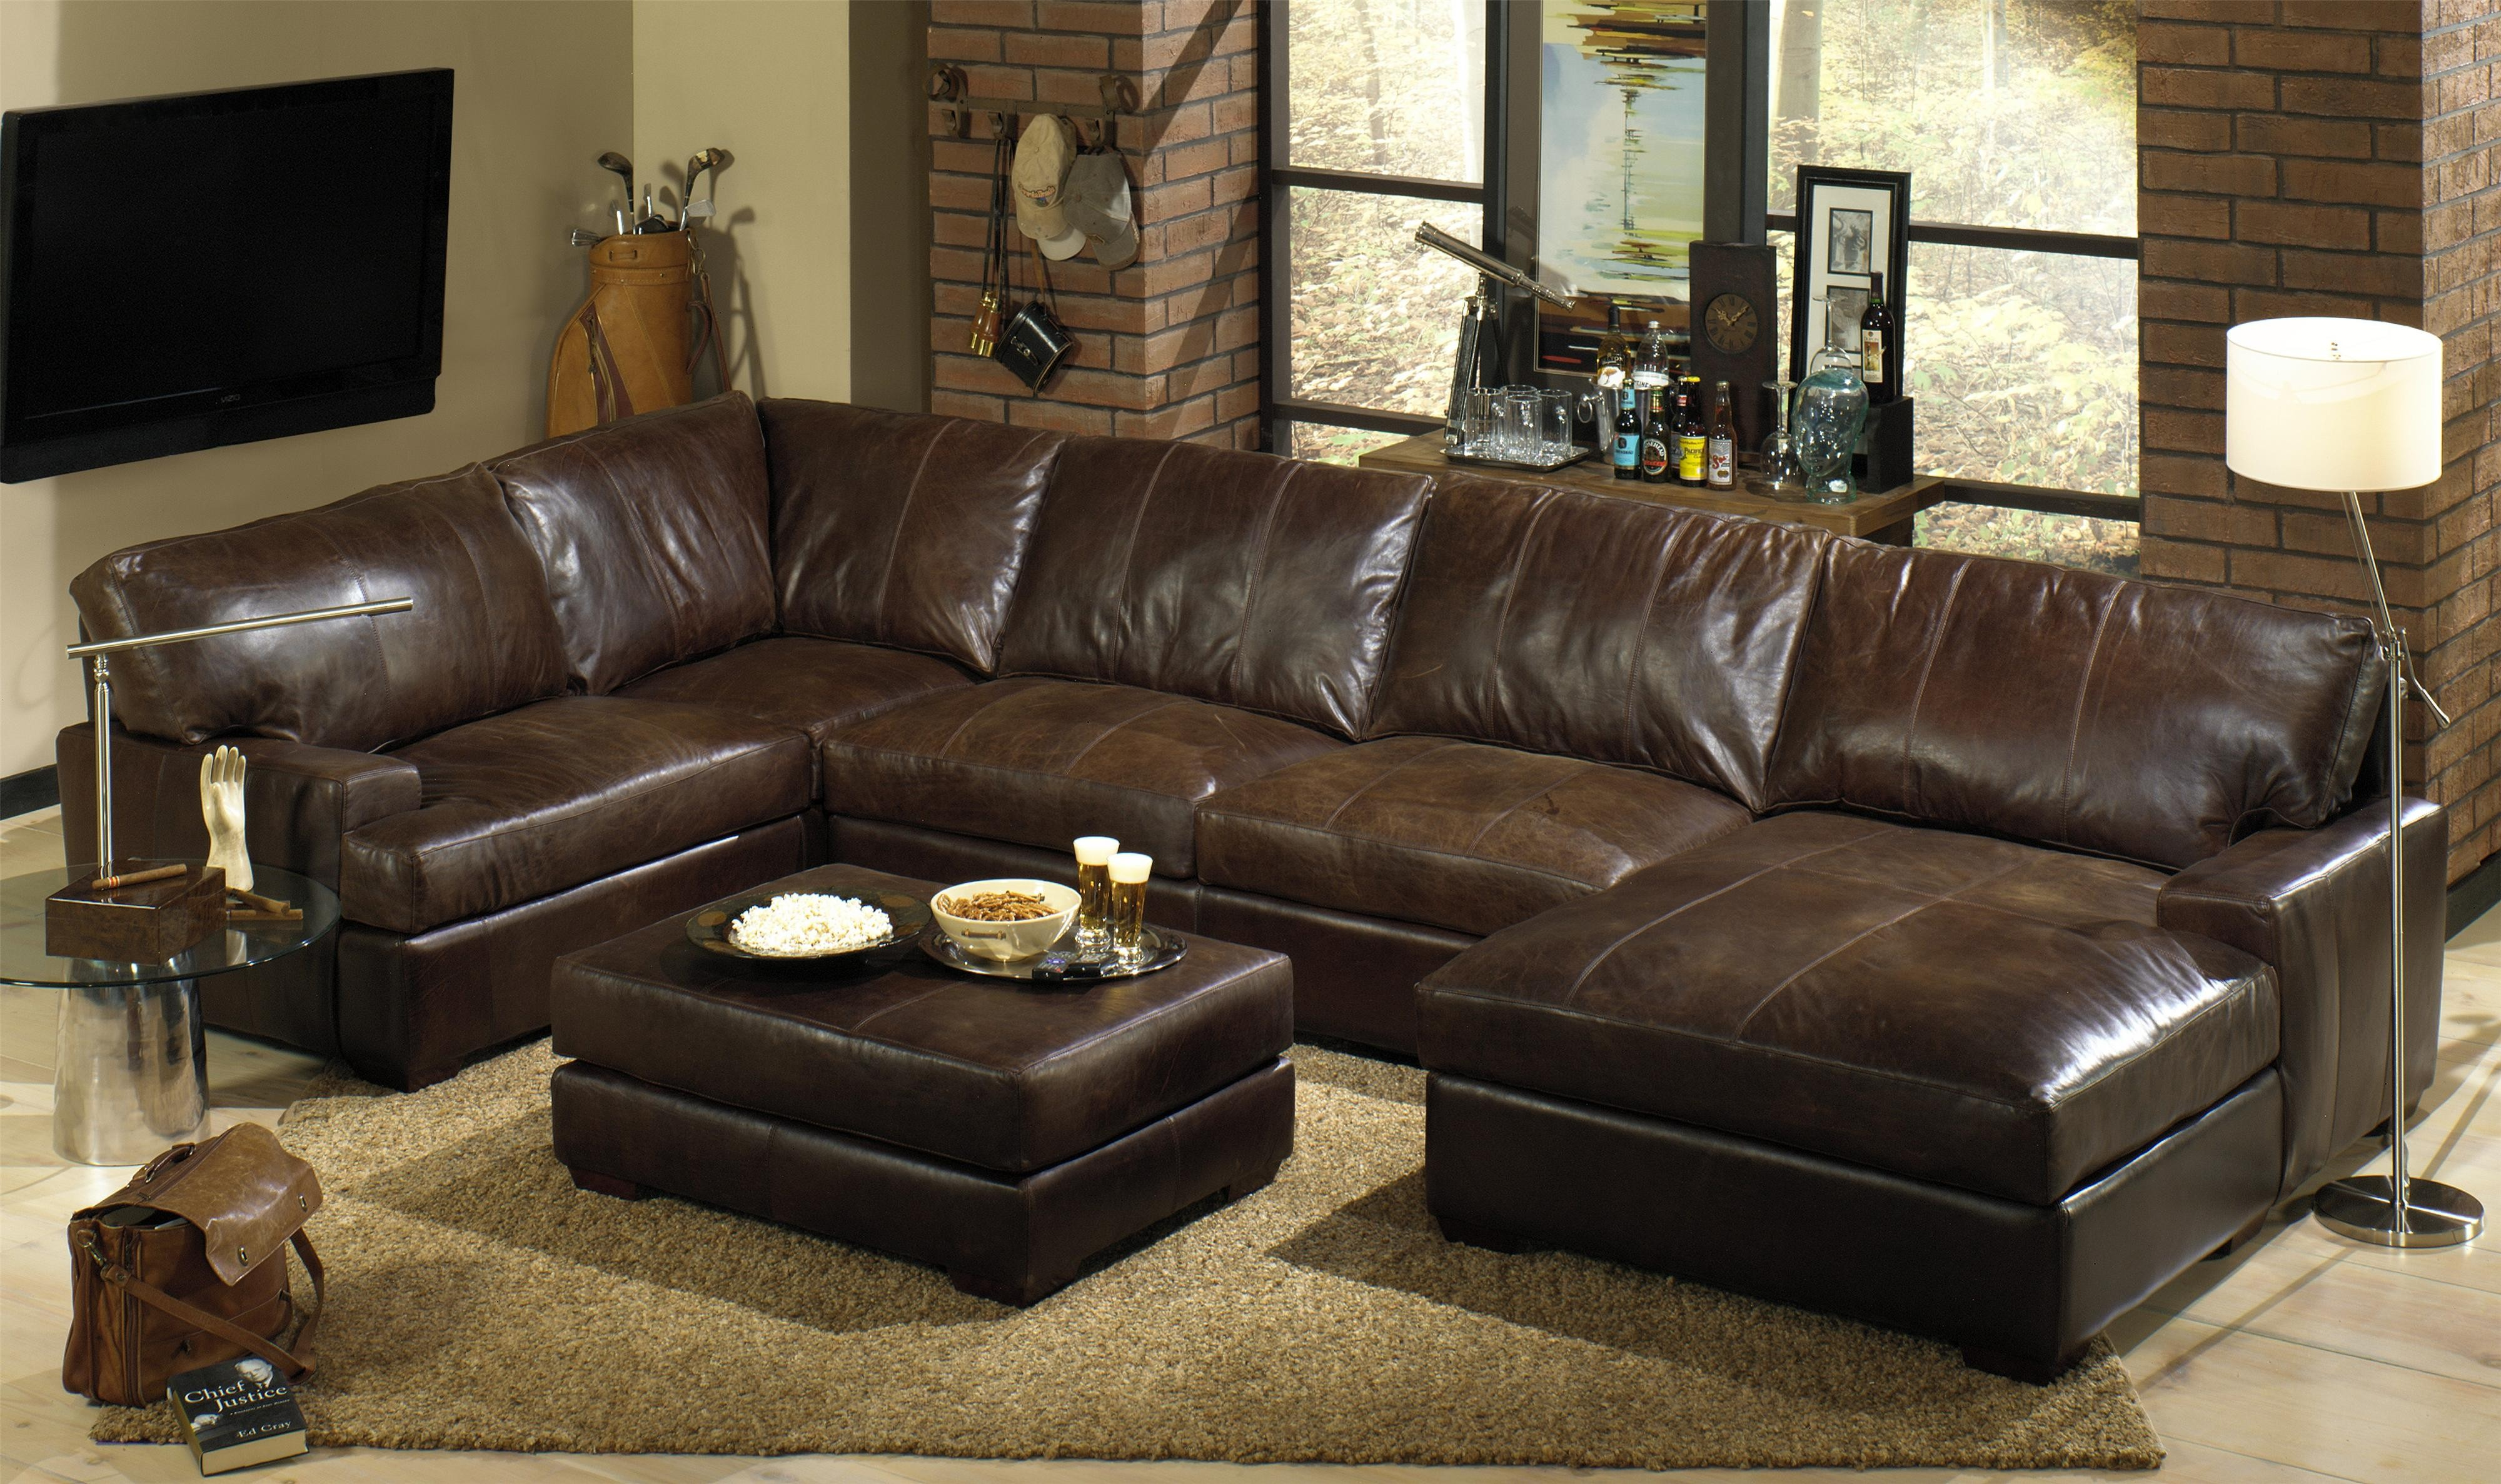 Sectional Leather sofas Lovely sofa Fabric Power Reclining Sectional Costco Sectional sofas Construction